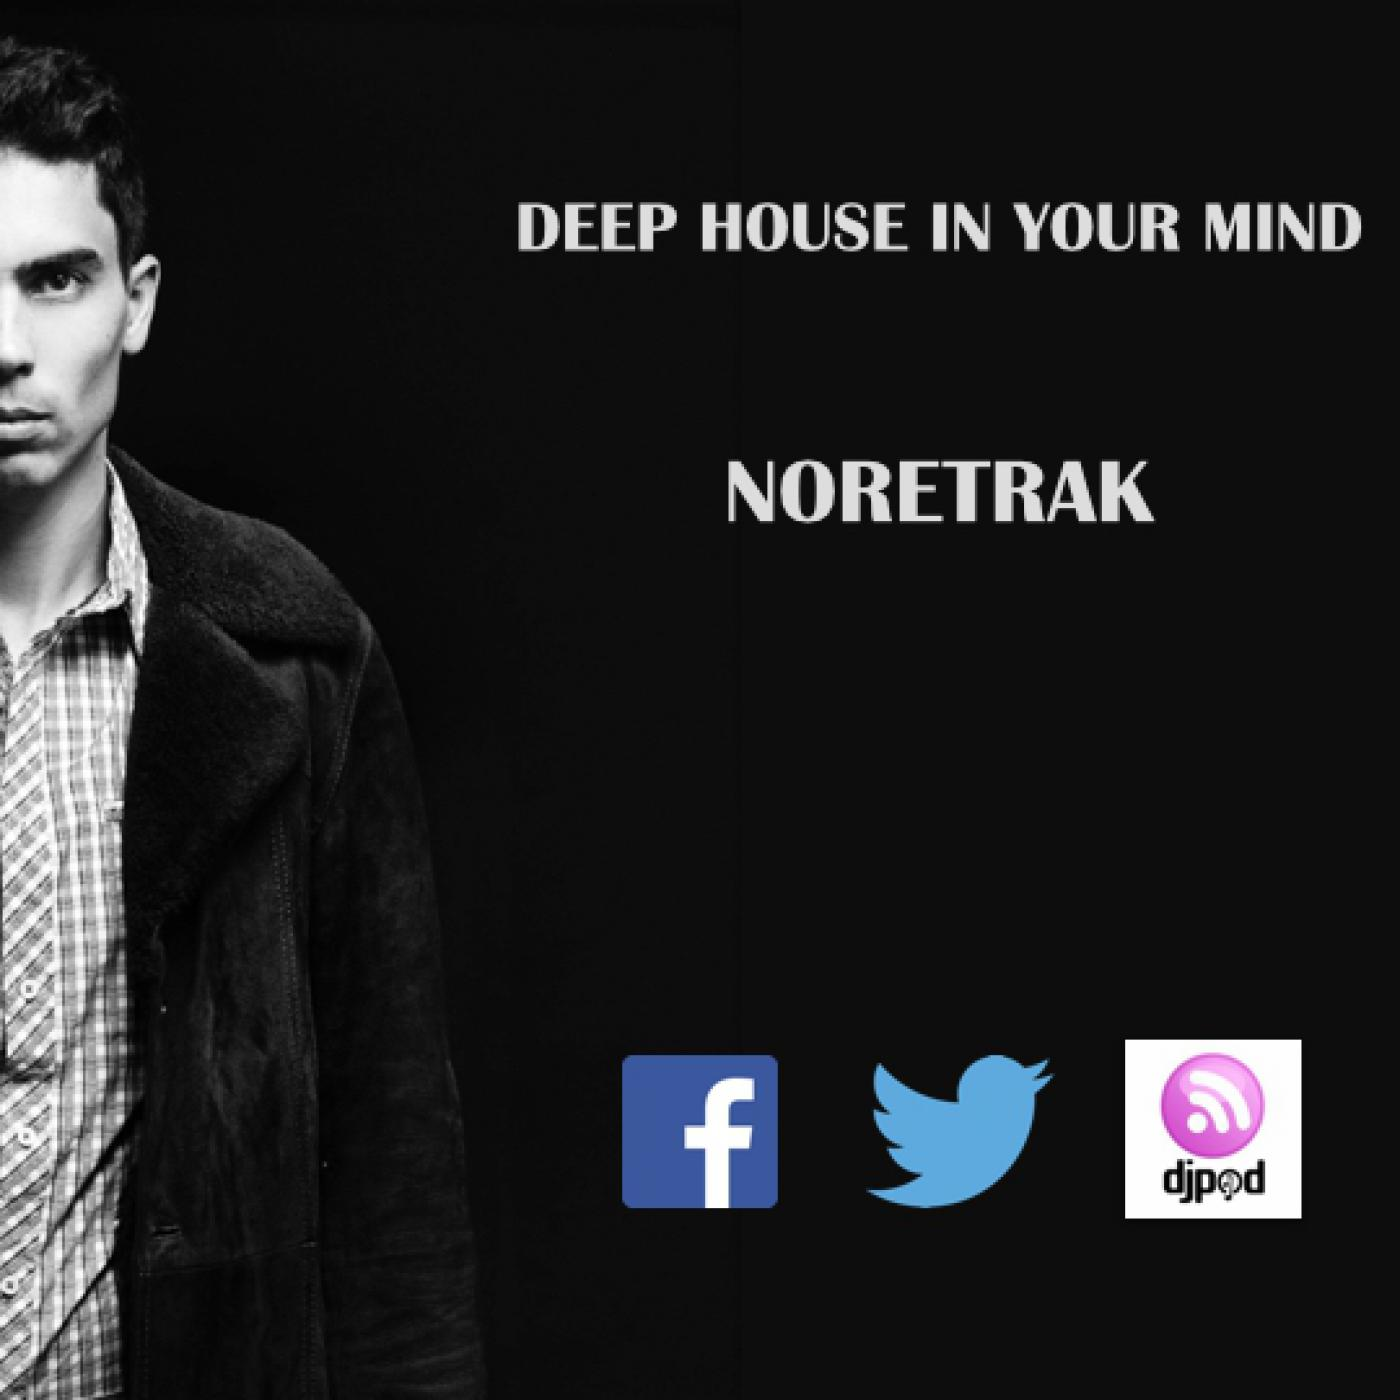 Deep House in your mind